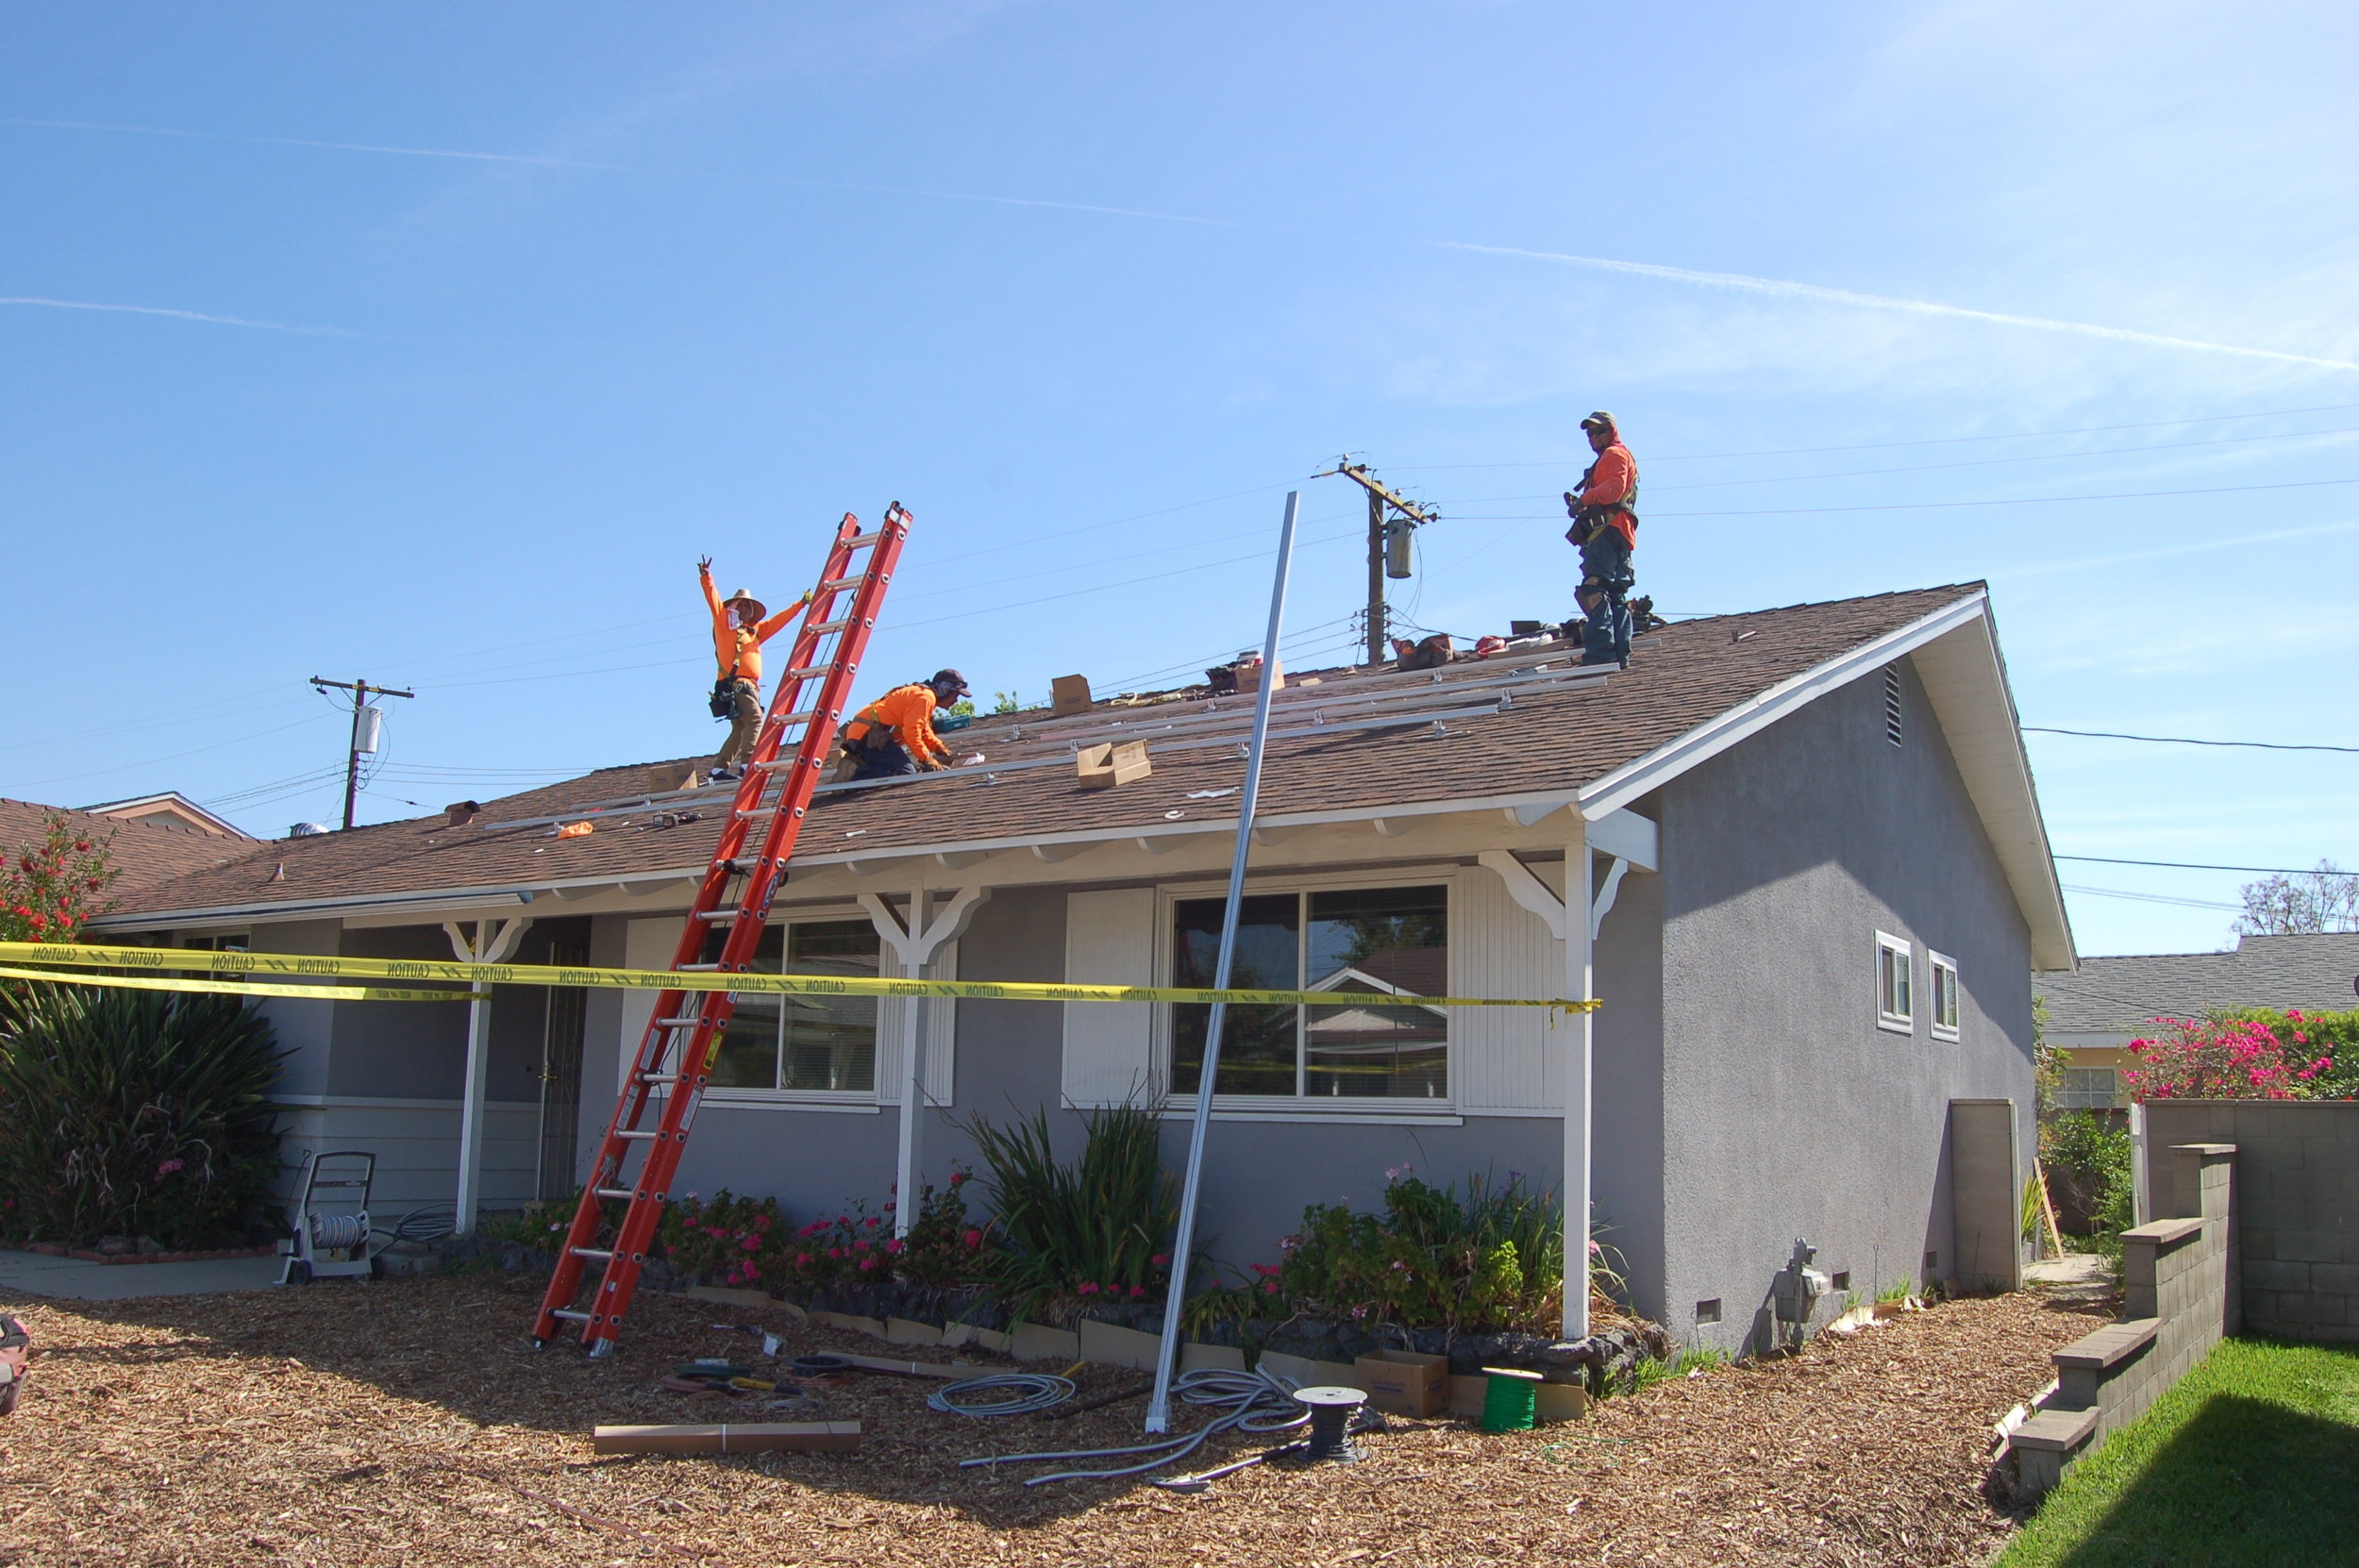 A local solar company putting supports for PV panels on our roof. No that's not a tiny man on the ladder.